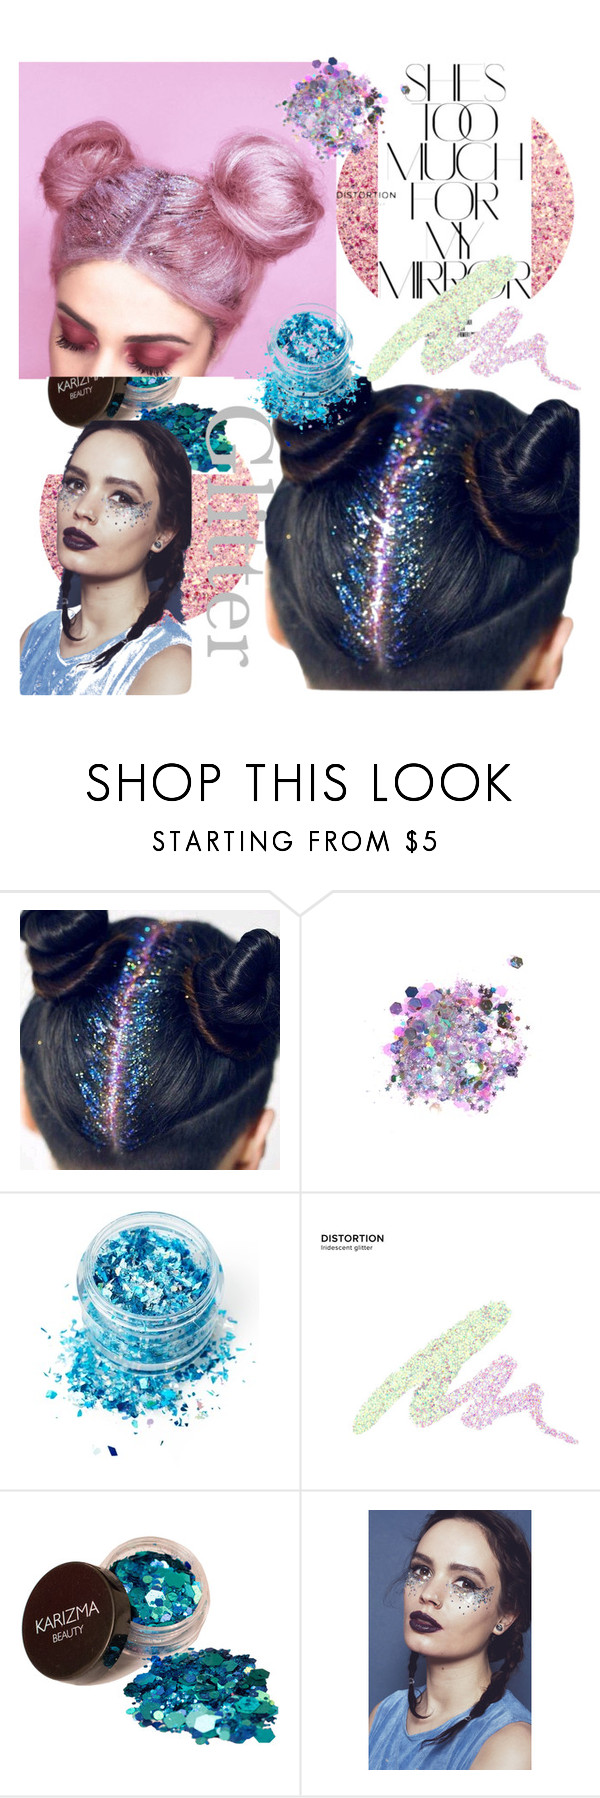 """""""Glitter Hair!"""" by lenaaa12 ❤ liked on Polyvore featuring Rika, The Gypsy Shrine, In Your Dreams and Urban Decay"""